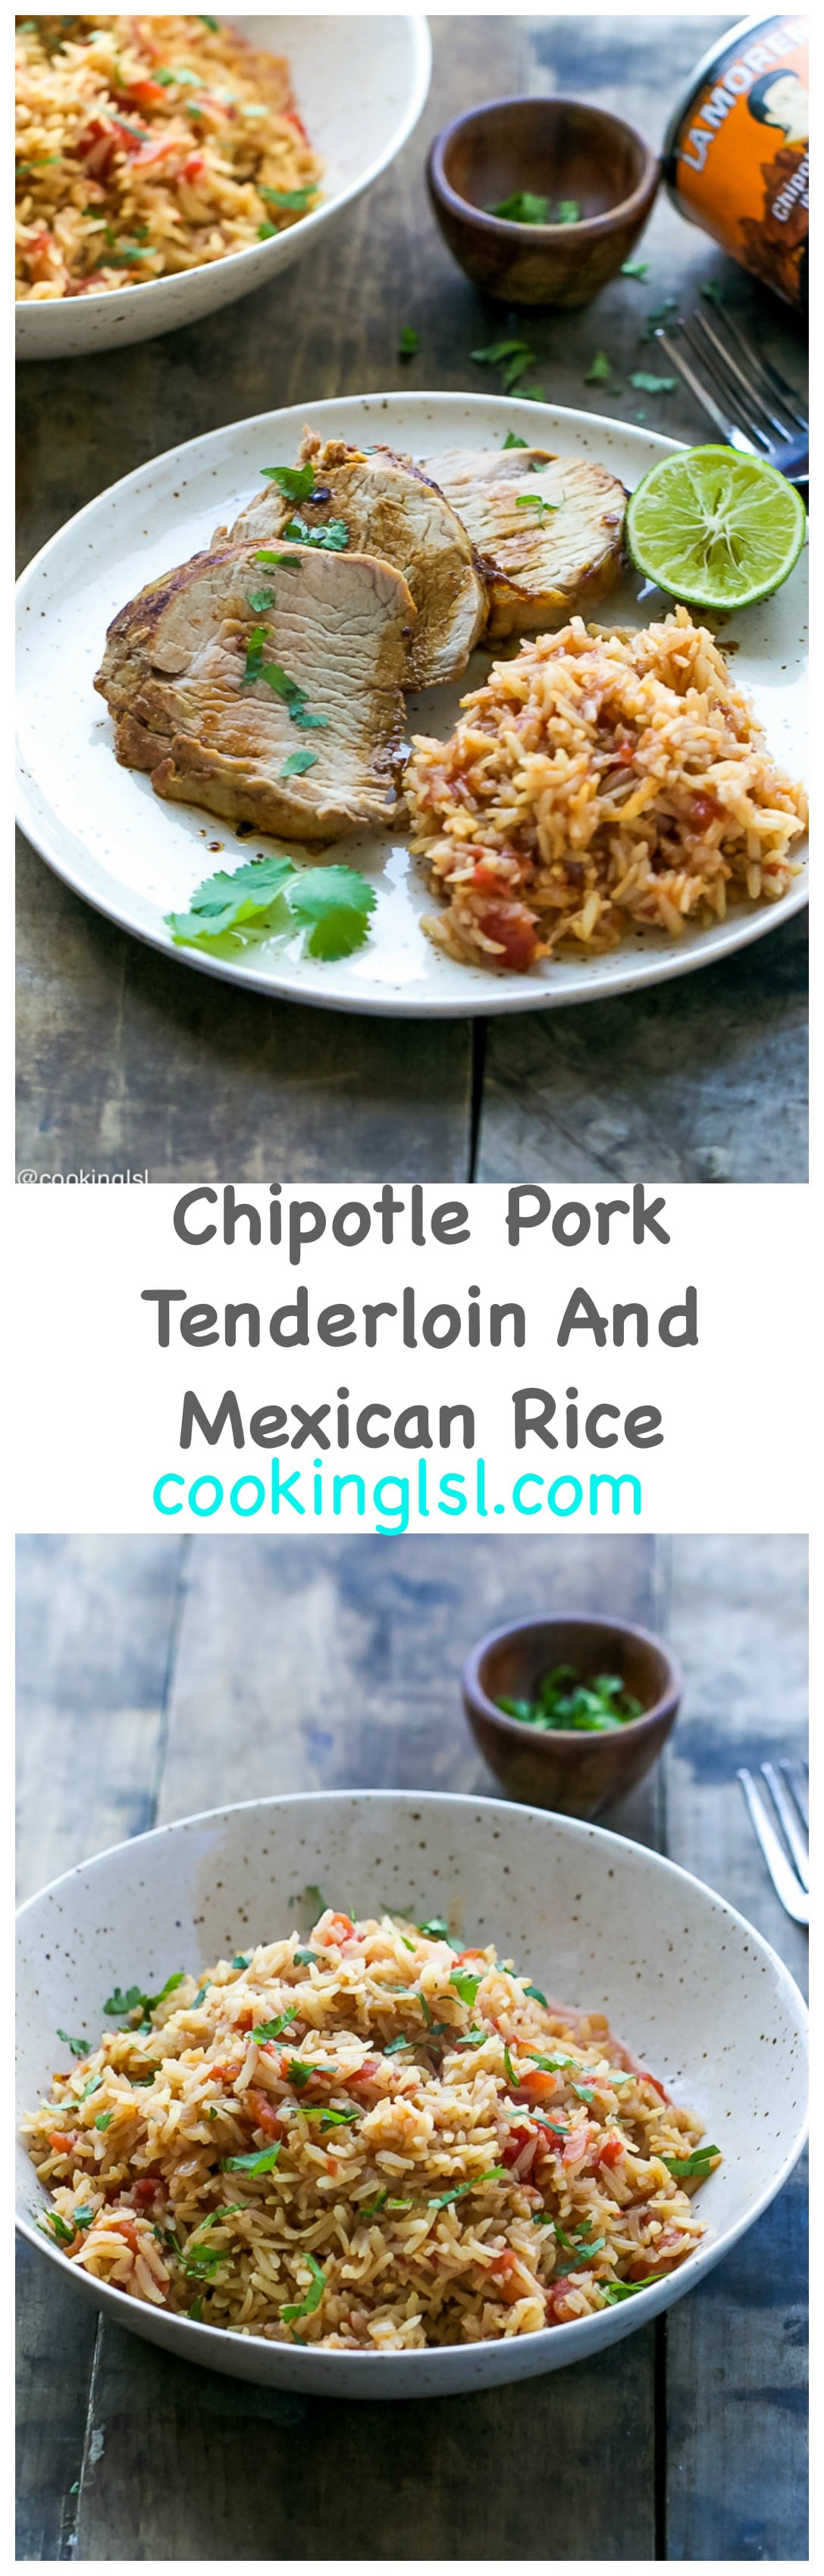 Chipotle Pork Tenderloin And Mexican Rice Recipe - pork tenderloin in a flavorful marinade with La Morena® chipotle chiles in adobo sauce, garlic, orange juice, oregano and cumin. Served with a very simple to make Mexican style rice.  #chipotle #porktenderloin #mexicanrecipe